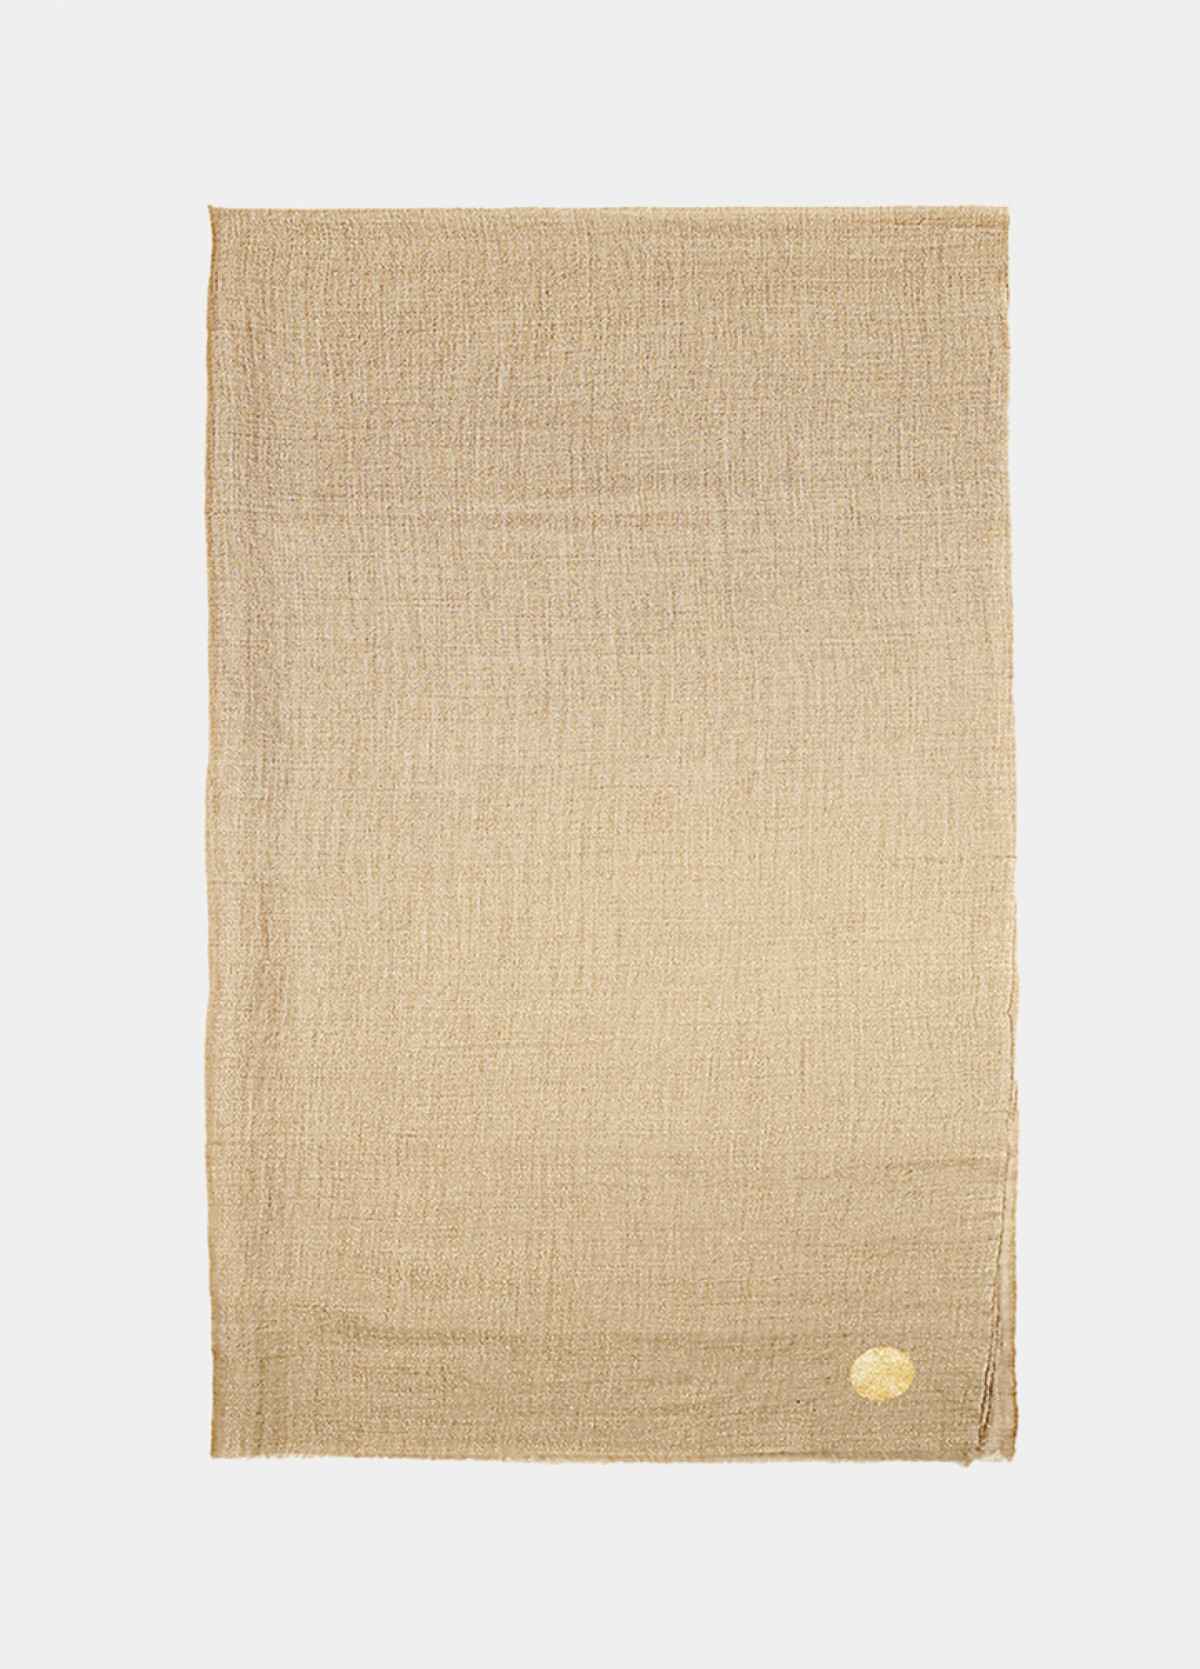 The Gold Cashmere Stole